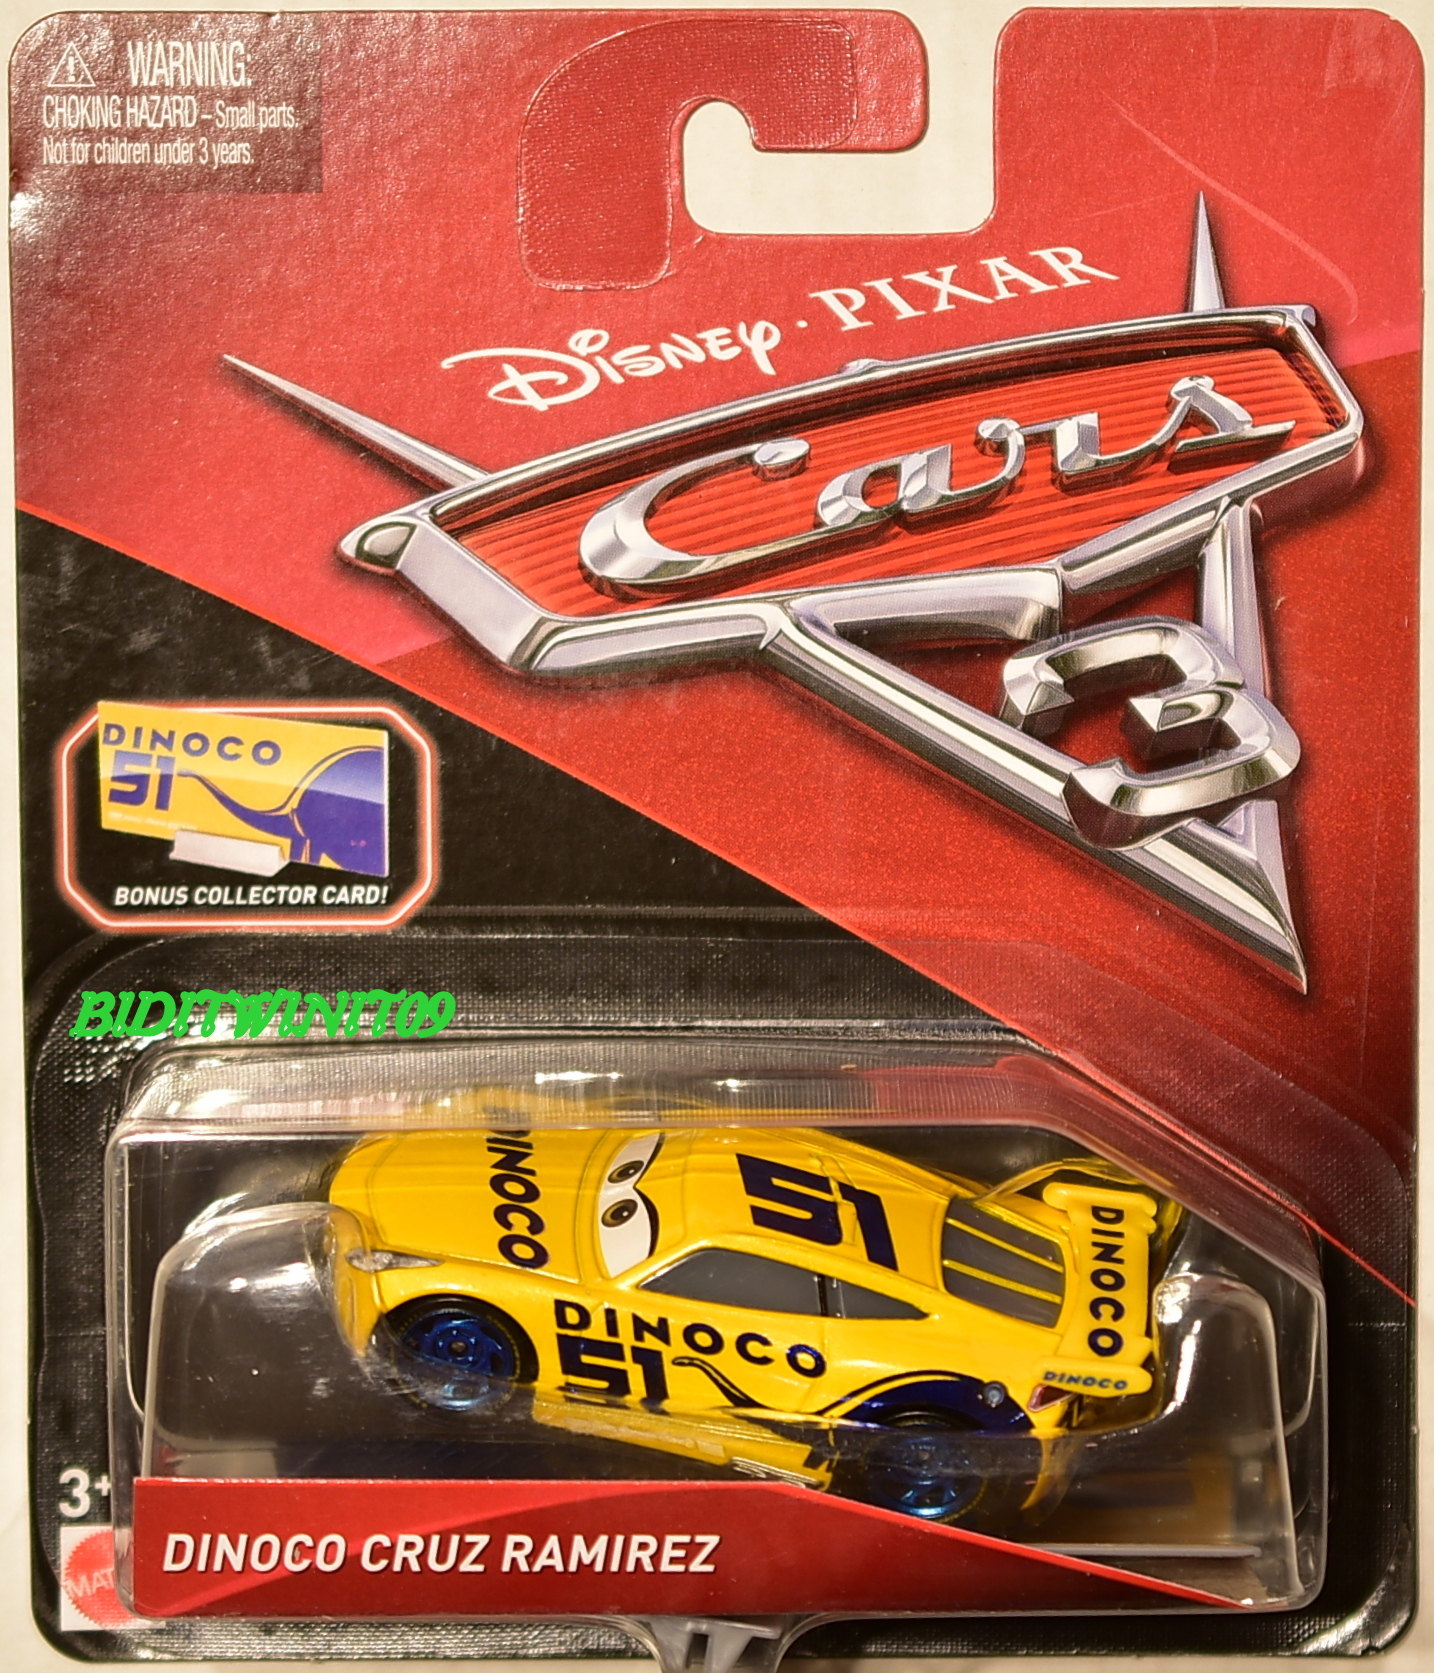 DISNEY PIXAR CARS 3 DINOCO CRUZ RAMIREZ BONUS COLLECTOR CARD